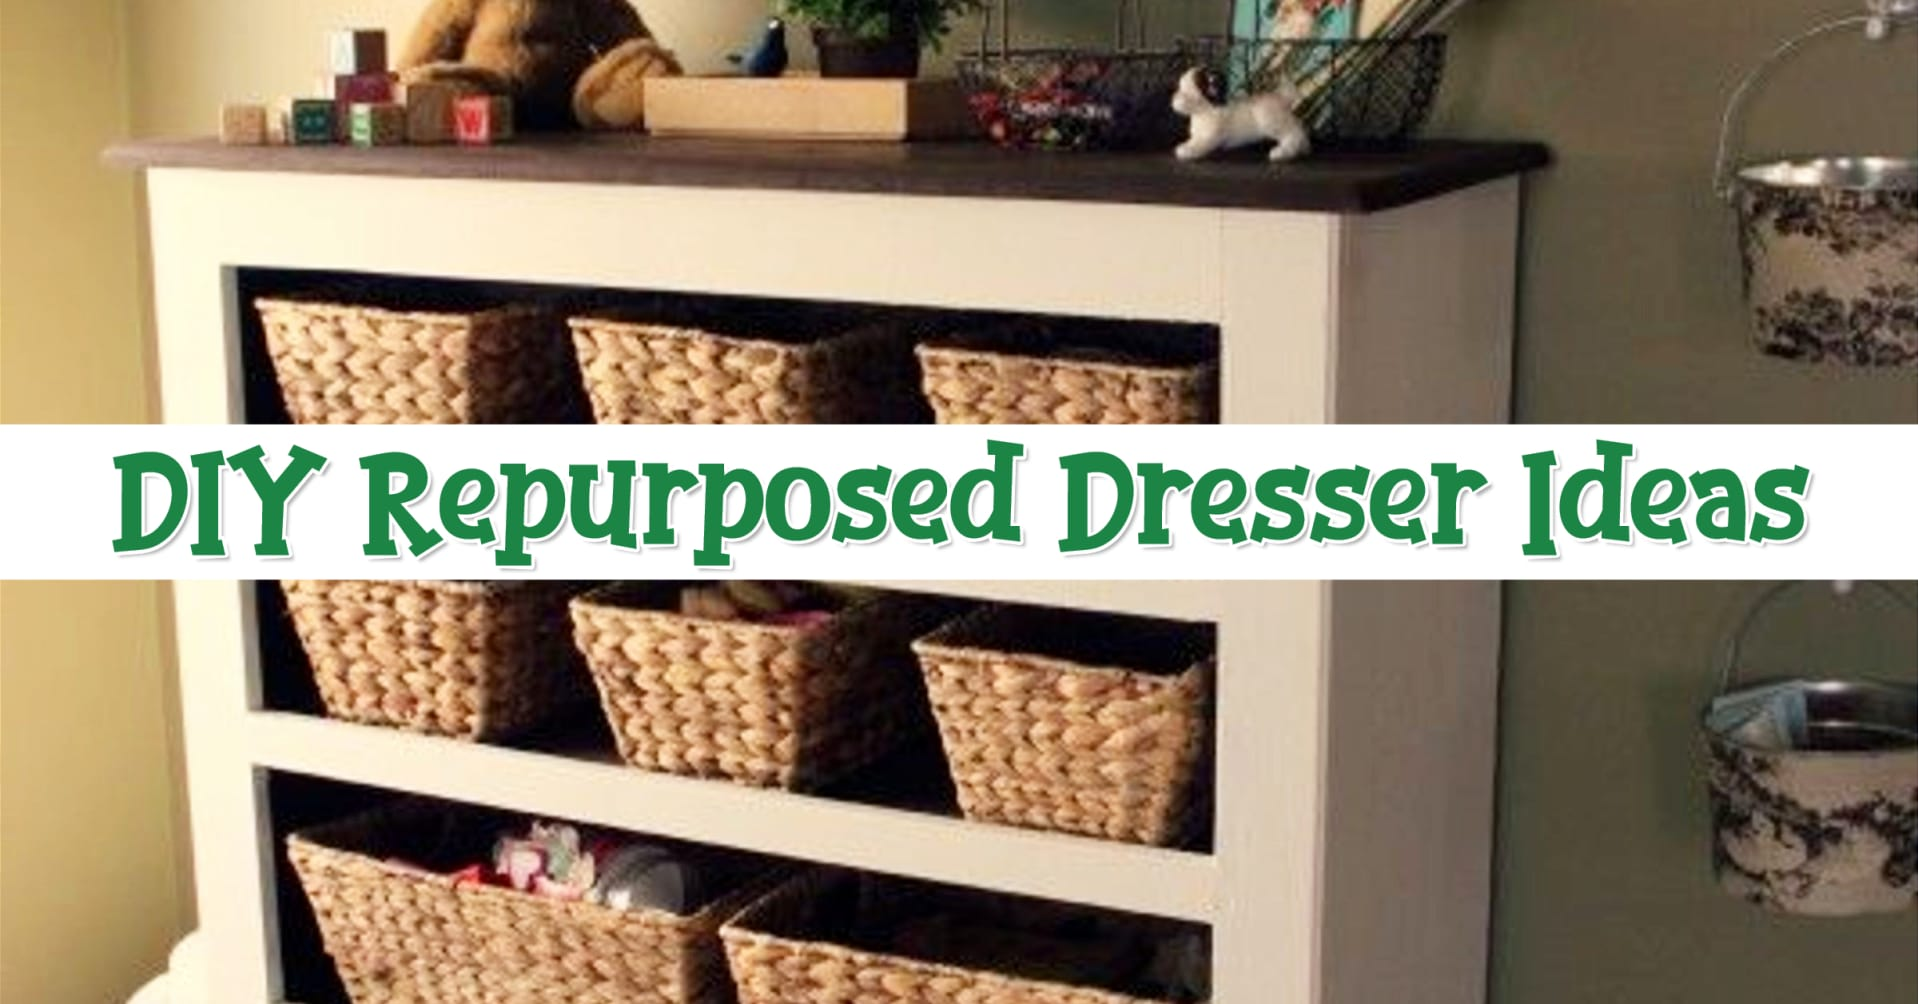 repurposed dresser ideas